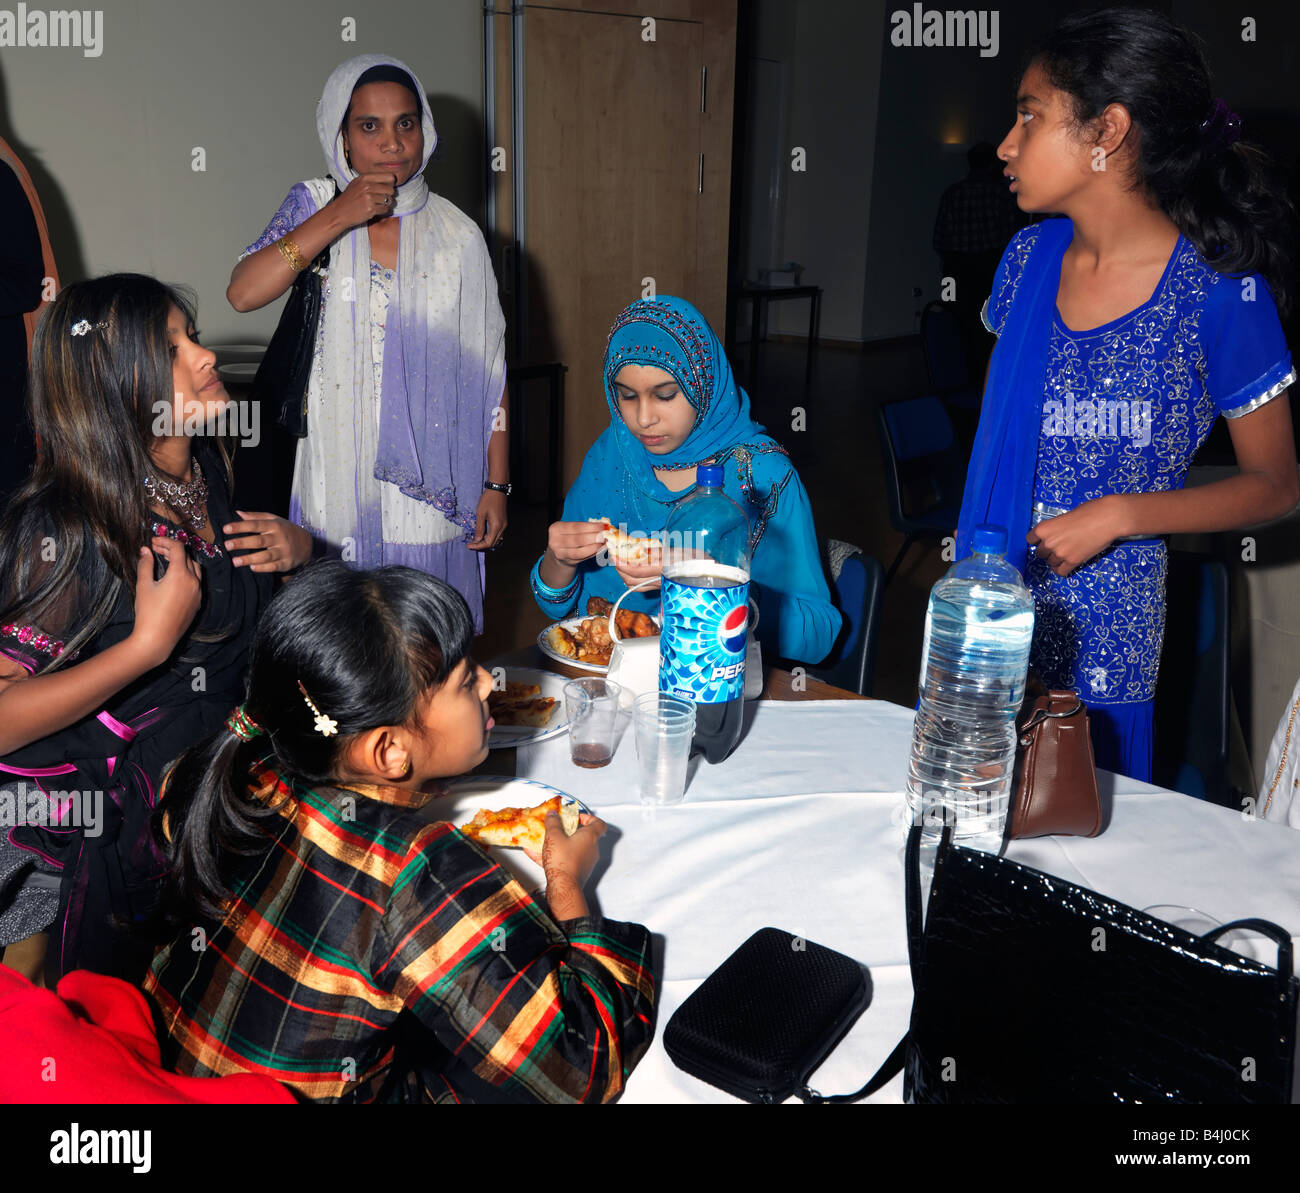 Eid Party at St Josephs Church Hall Epsom Surrey Teenage Girls Eating in the Womens Section - Stock Image